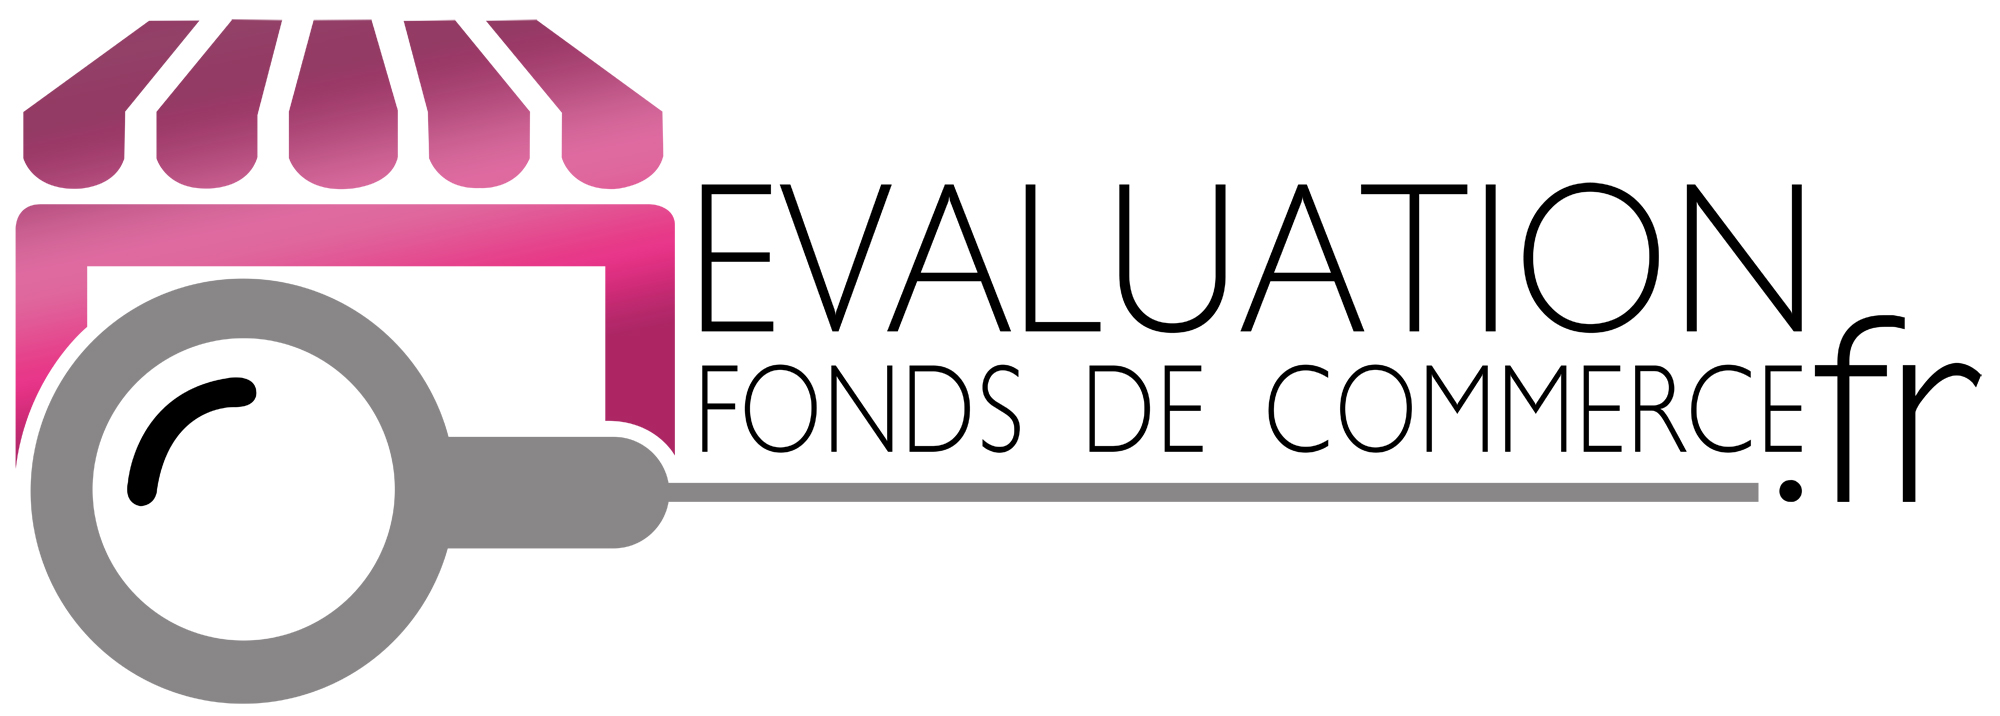 www.evaluation-fonds-de-commerce.fr, le 1er hub de l'évaluation des fonds de commerce